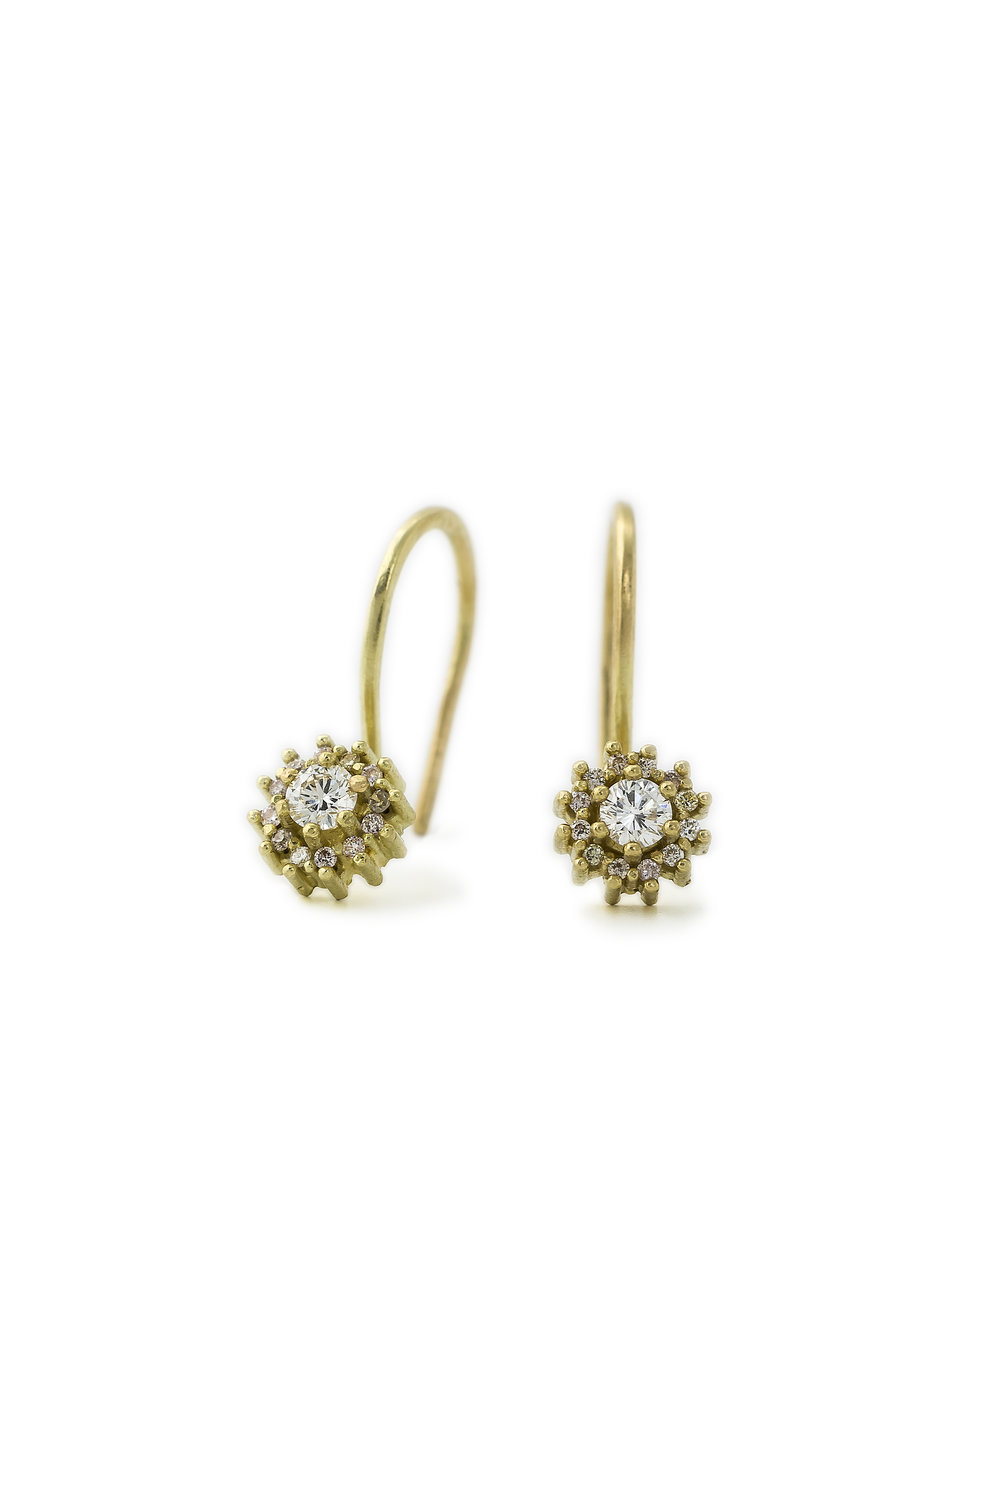 Multi coloured diamond halo earrings in gold, £1900